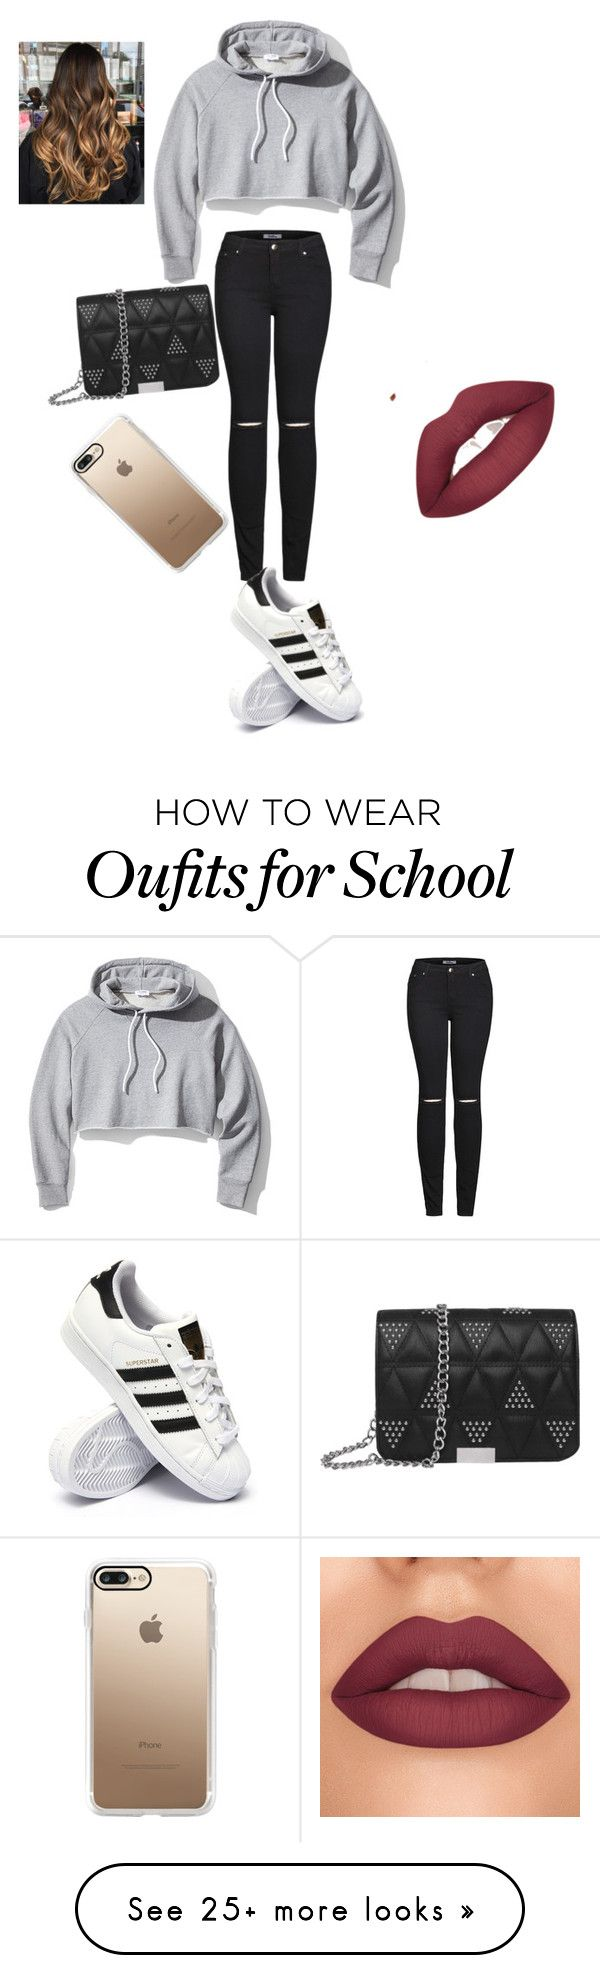 """""""school look"""" by amayagenesis664 on Polyvore featuring Frame, 2LUV, adidas and Casetify"""